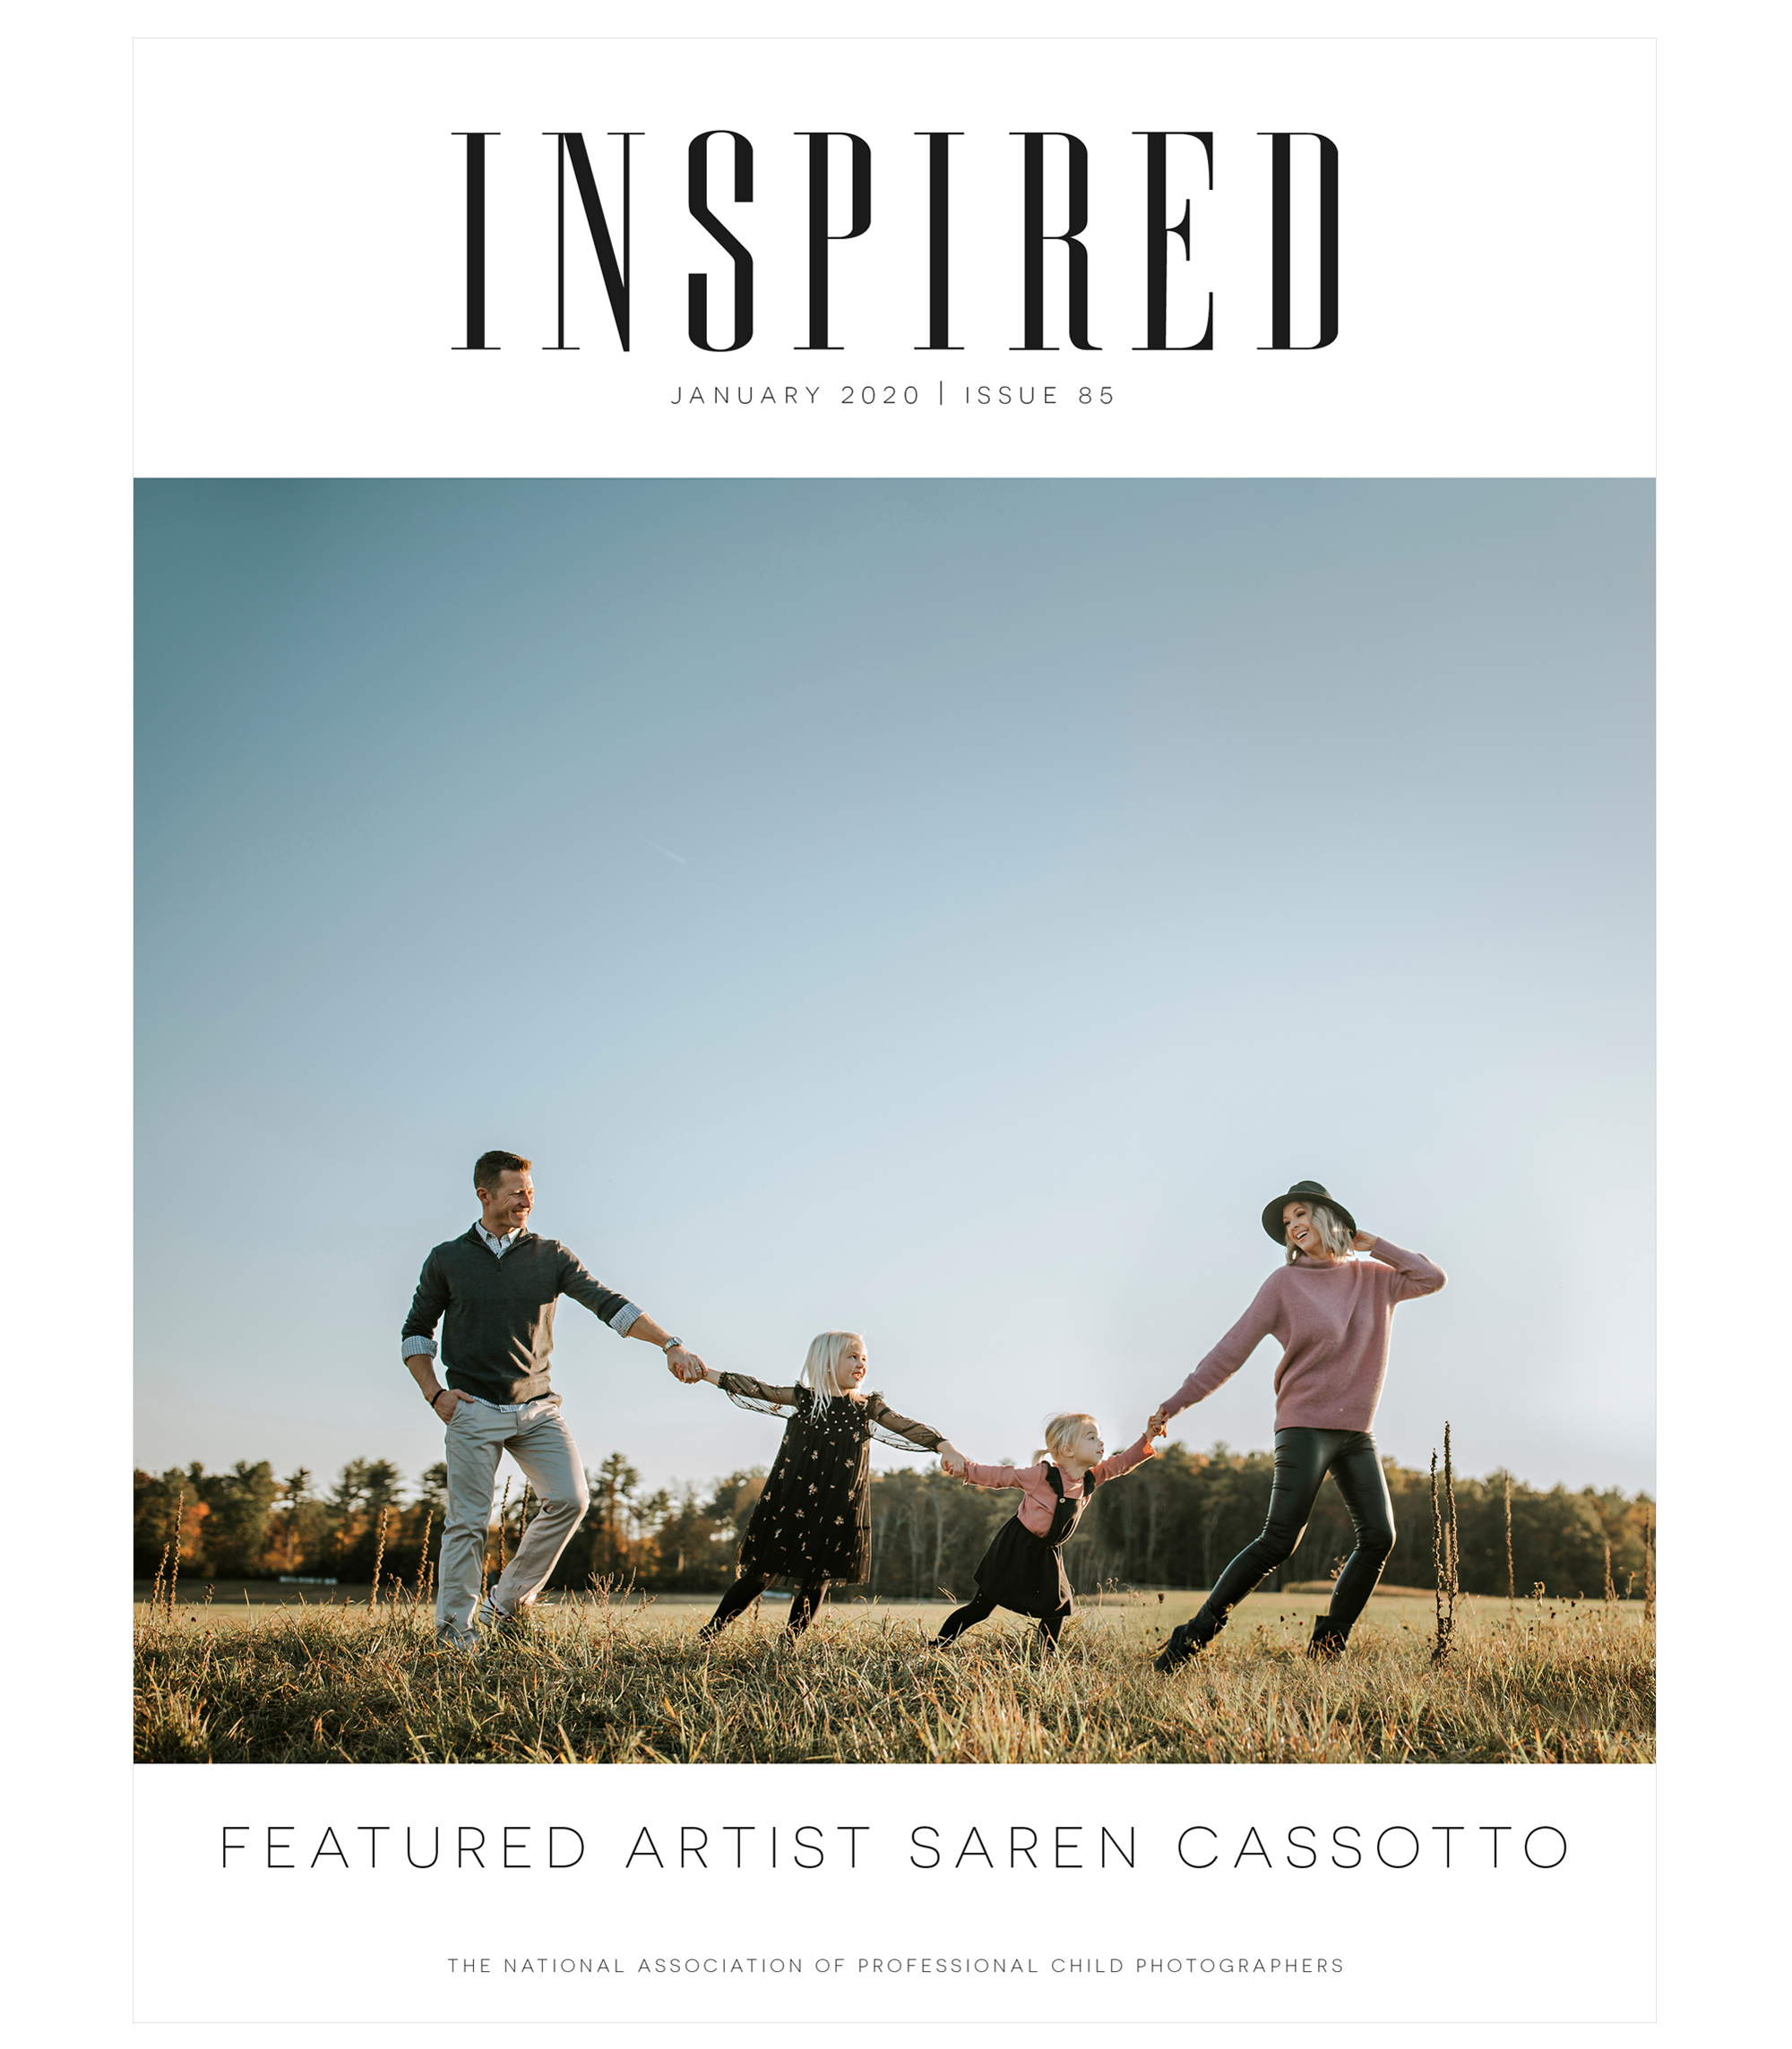 Inspired January 2020, Featured Artist Saren Cassotto, The National Association of Professional Child Photographers